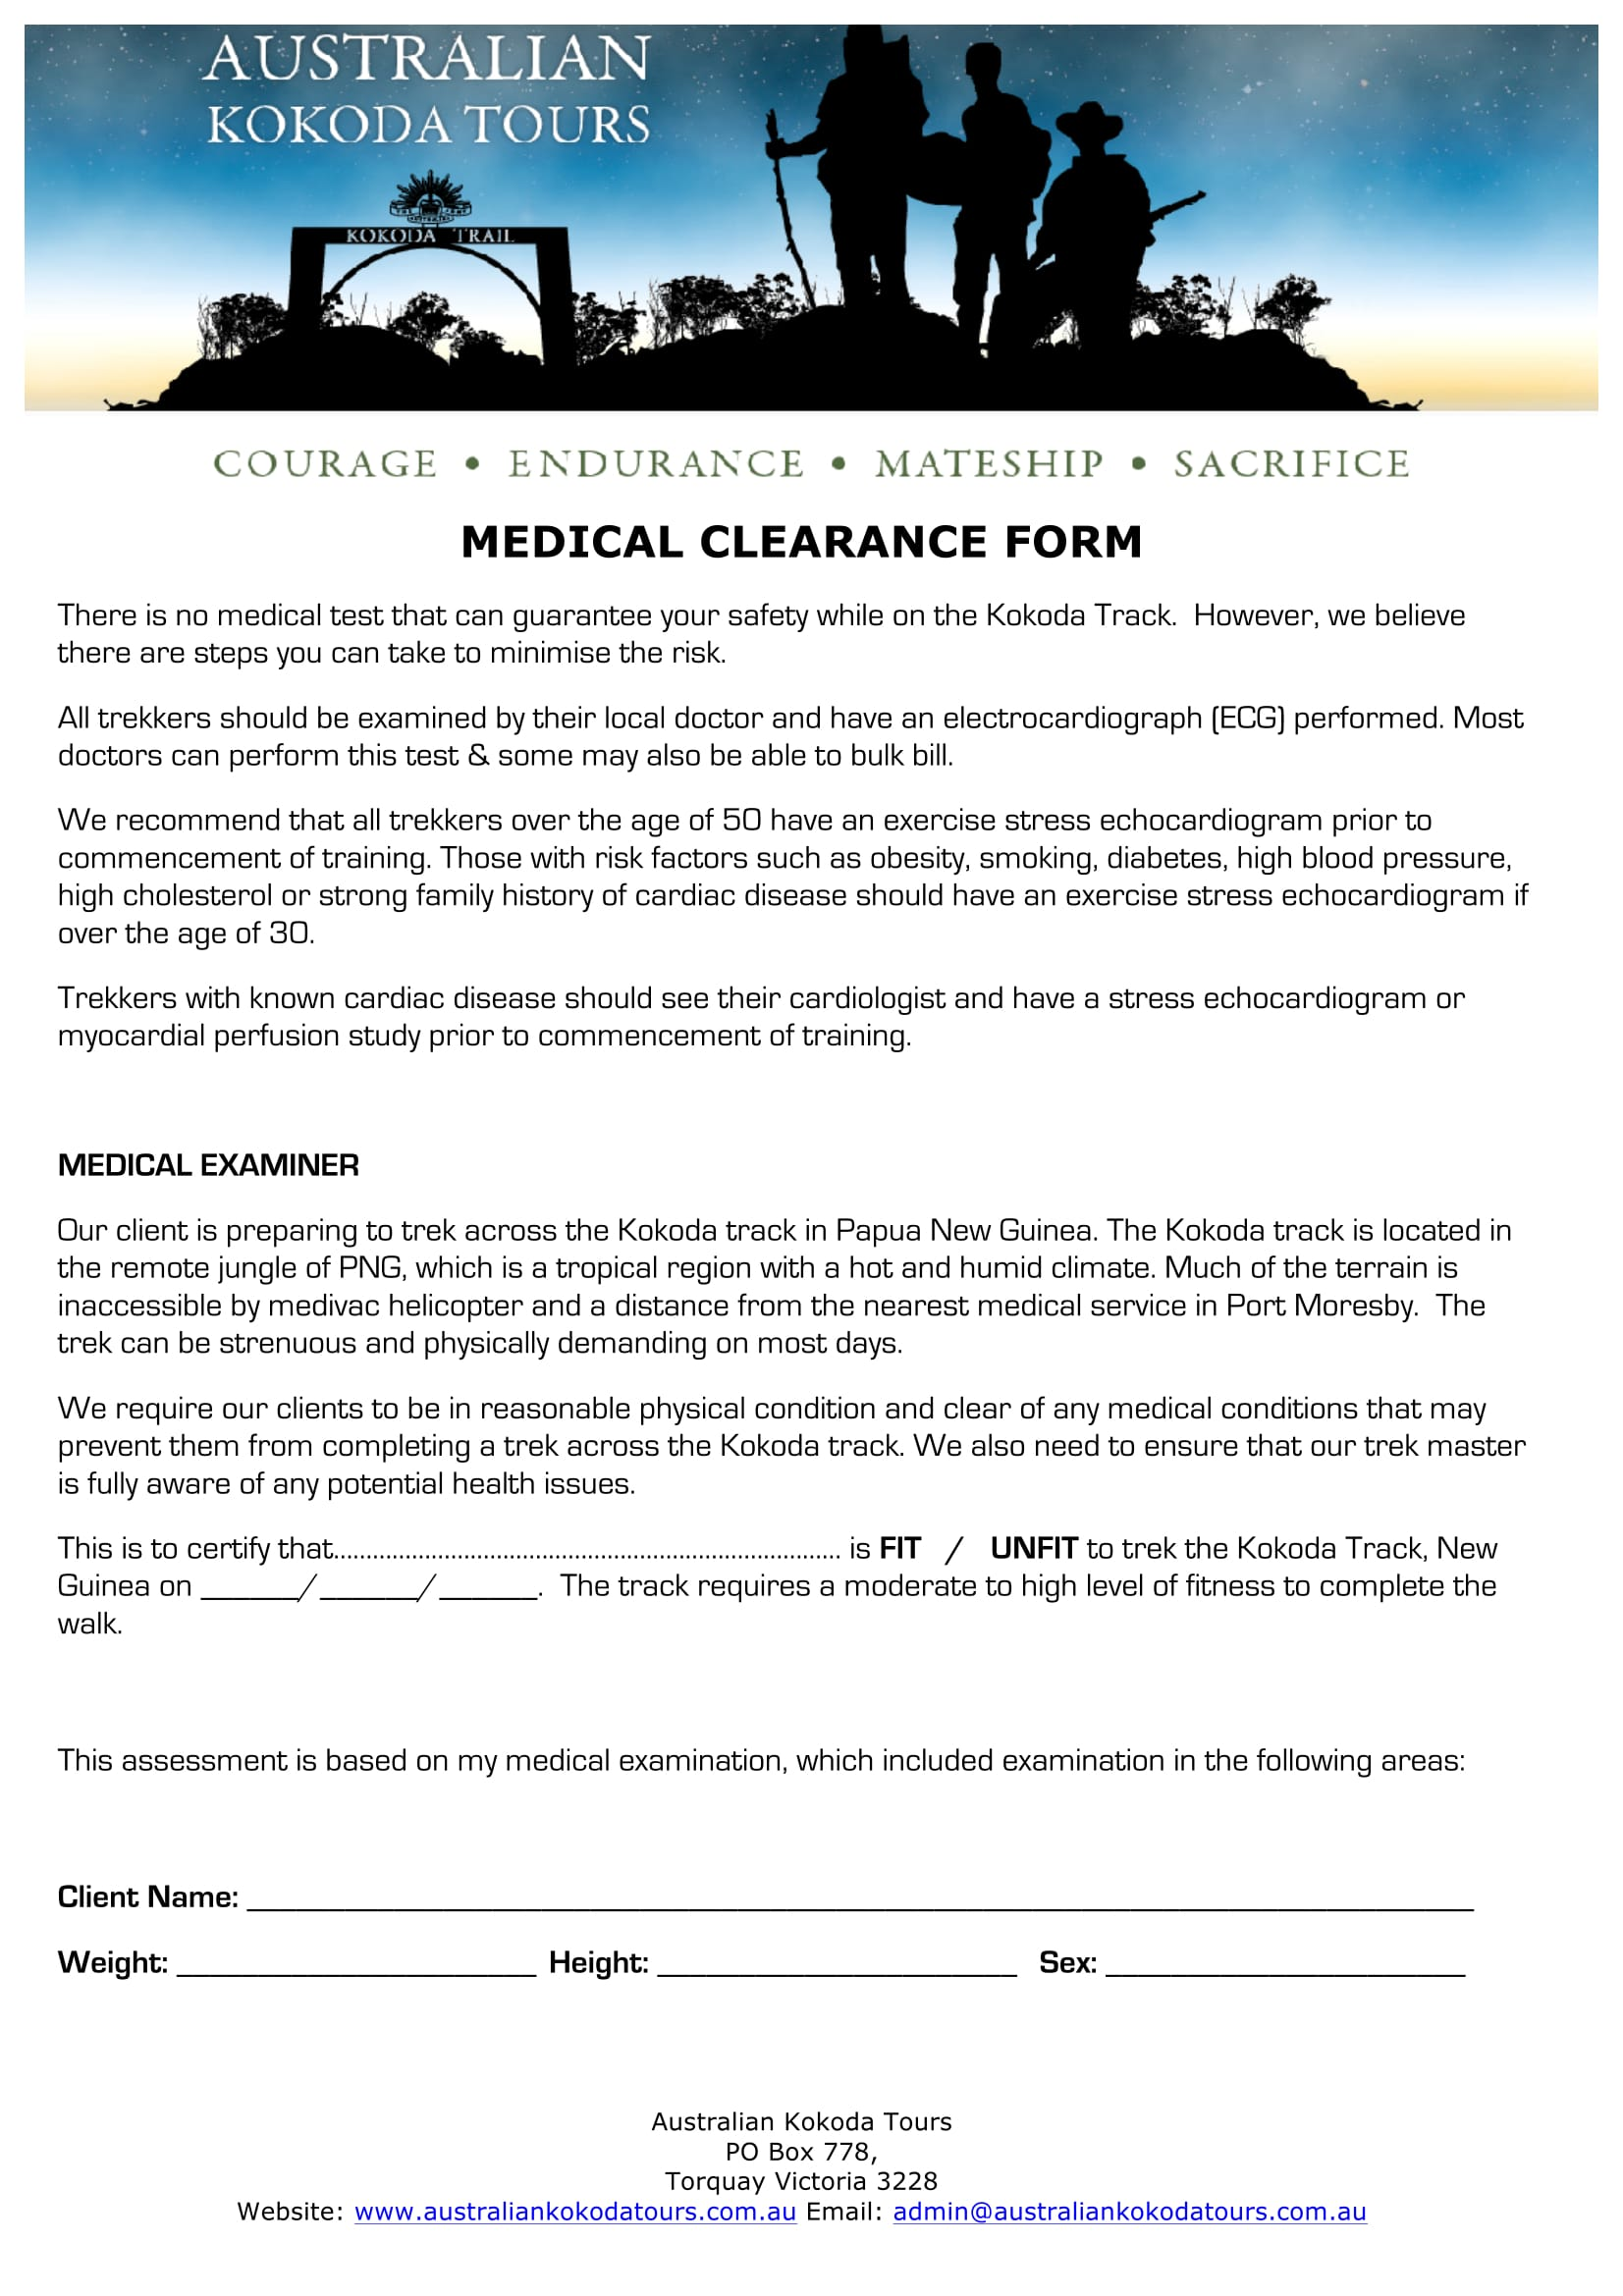 tour medical clearance form 1